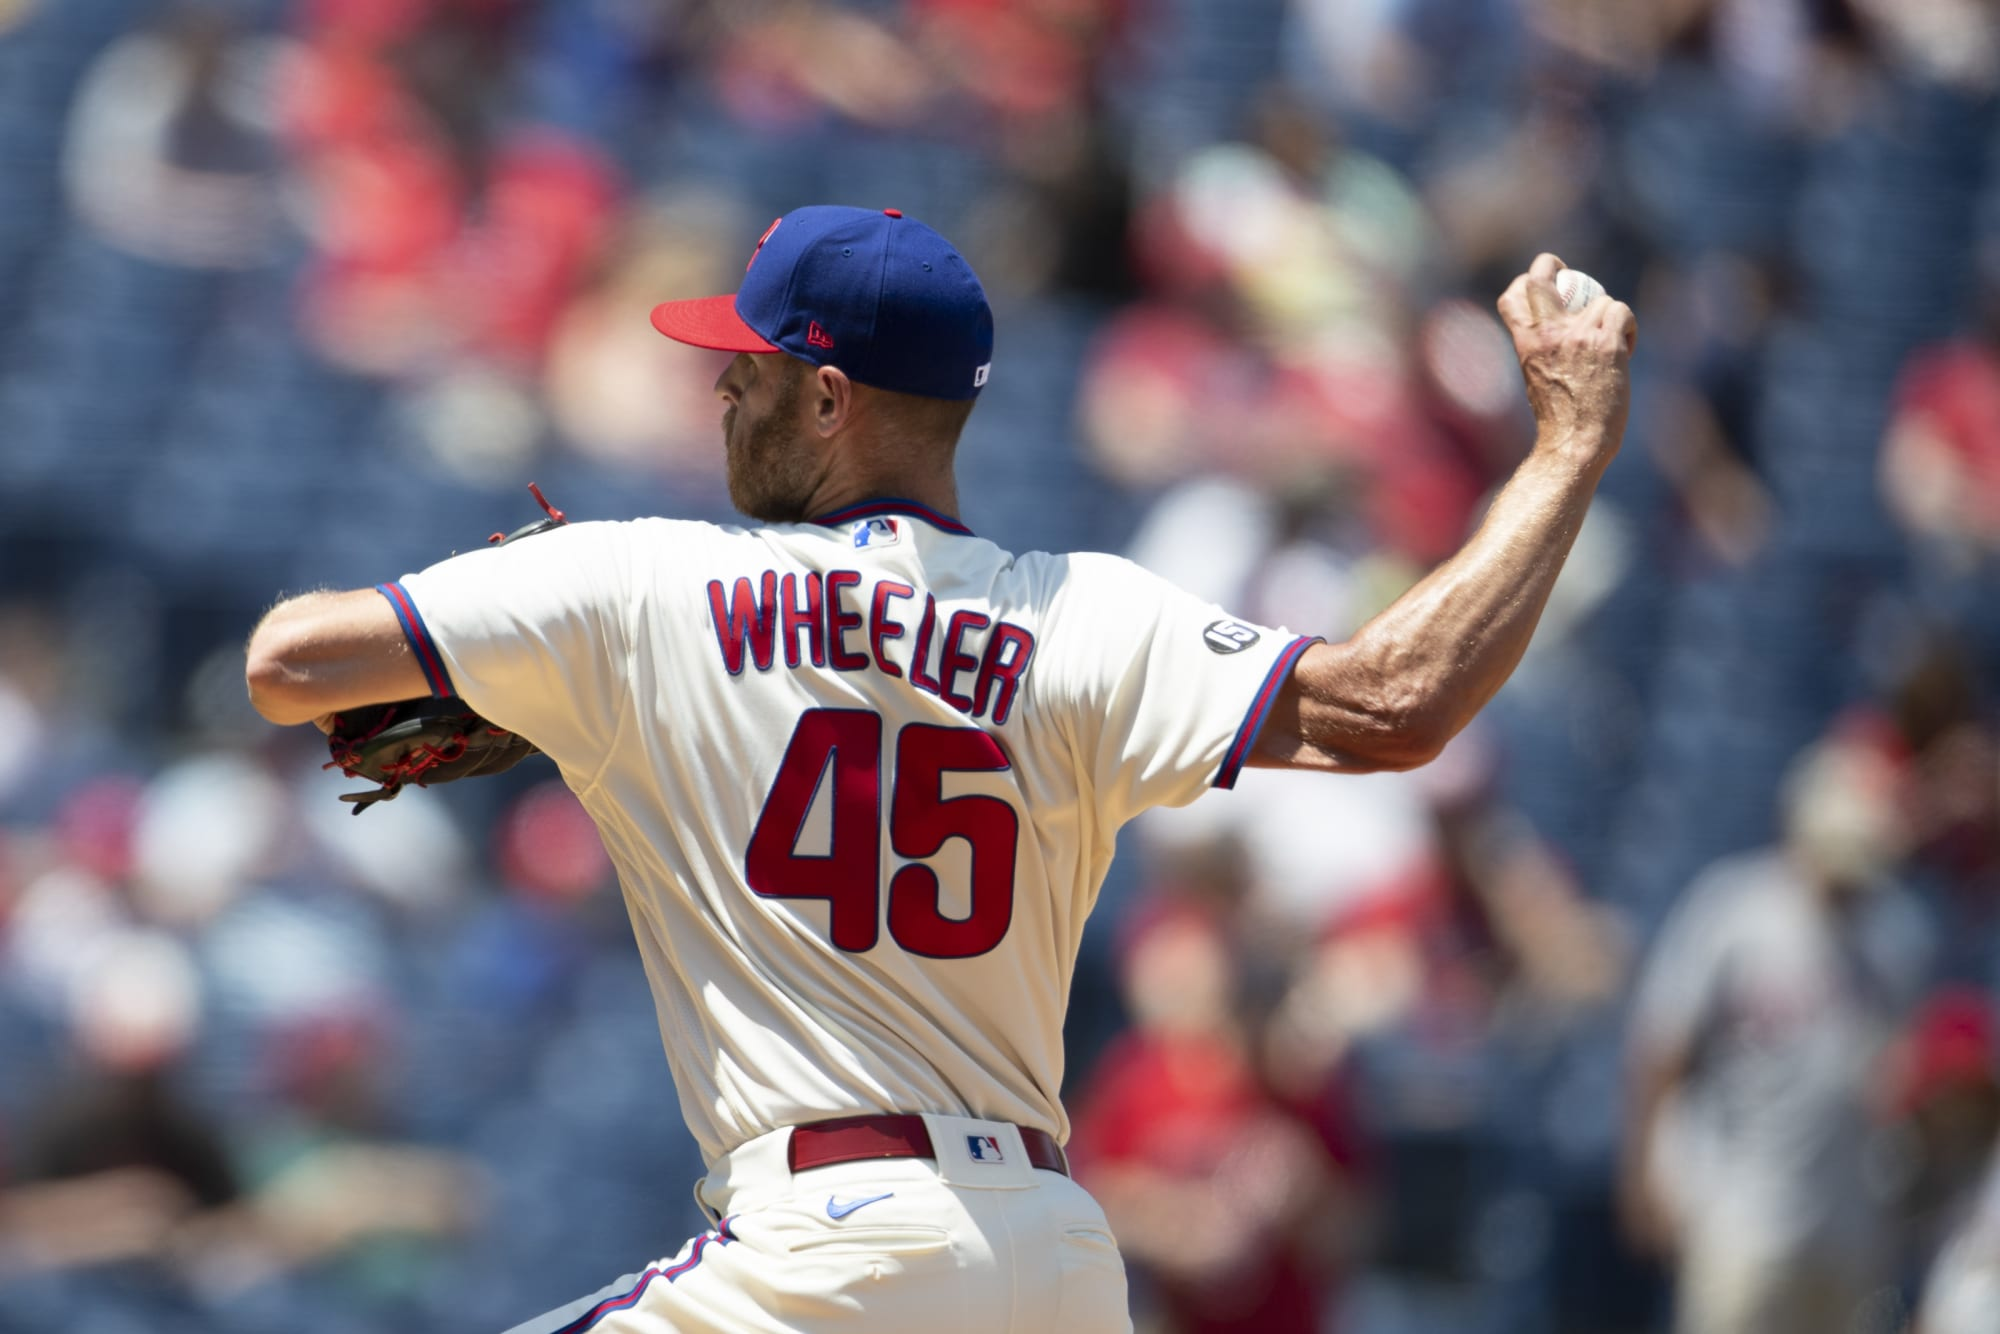 Phillies Game Today, July 28: Phillies vs Nationals Odds, Starting Lineup, Pitching Matchup, Predictions, Live Stream, and TV Channel